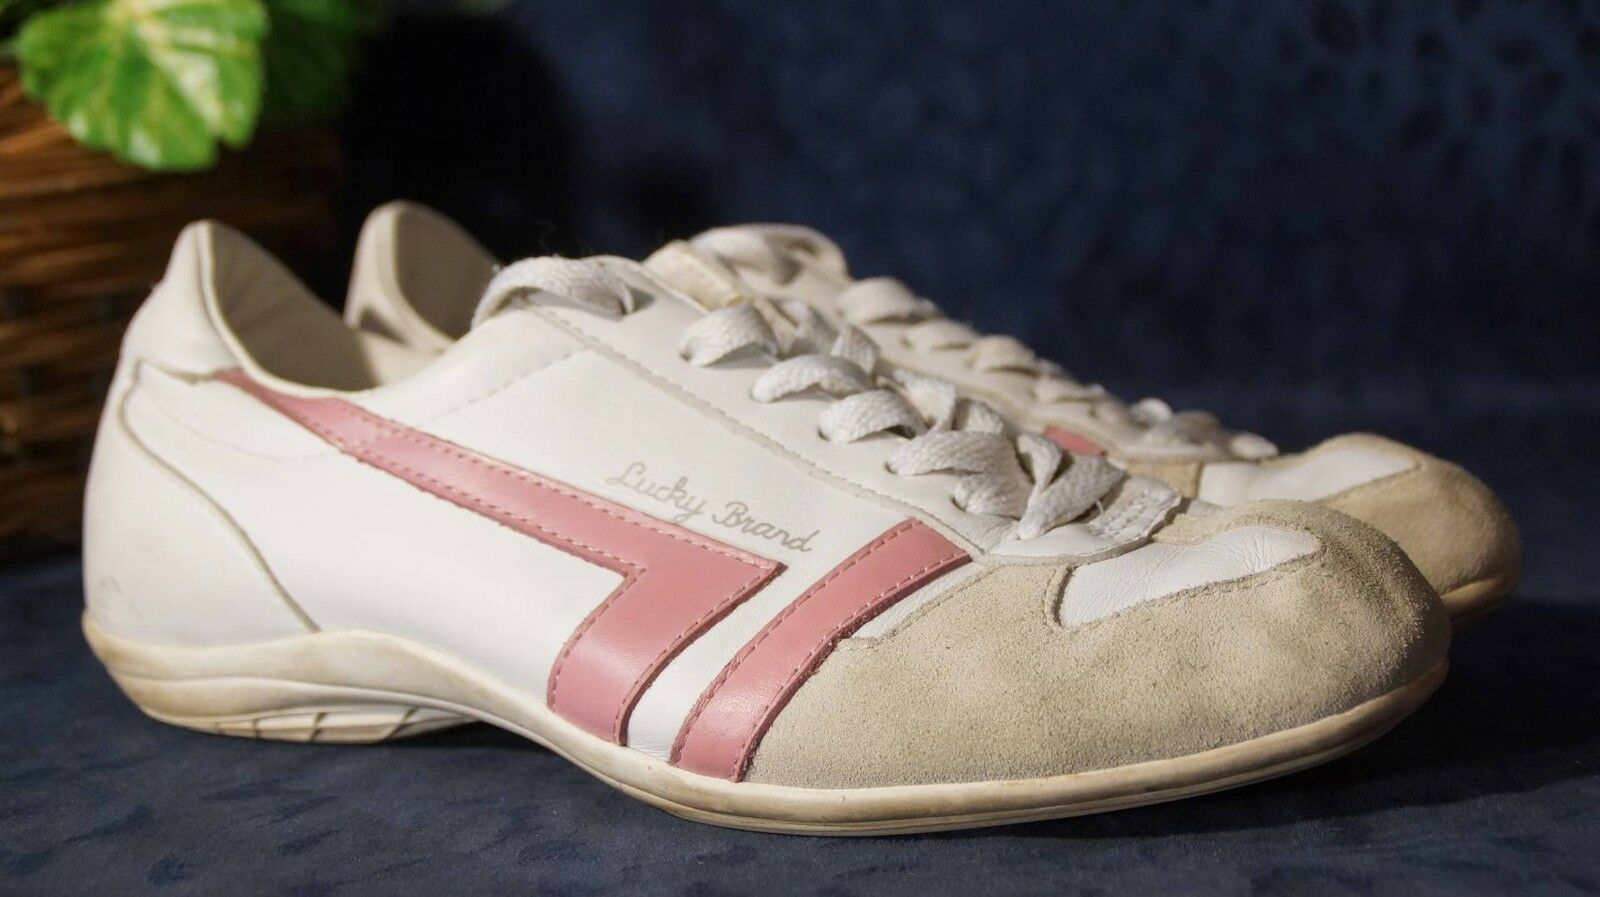 Attractive White Pink Beige LUCKY BRAND Fashion Sneakers Sz 8.5